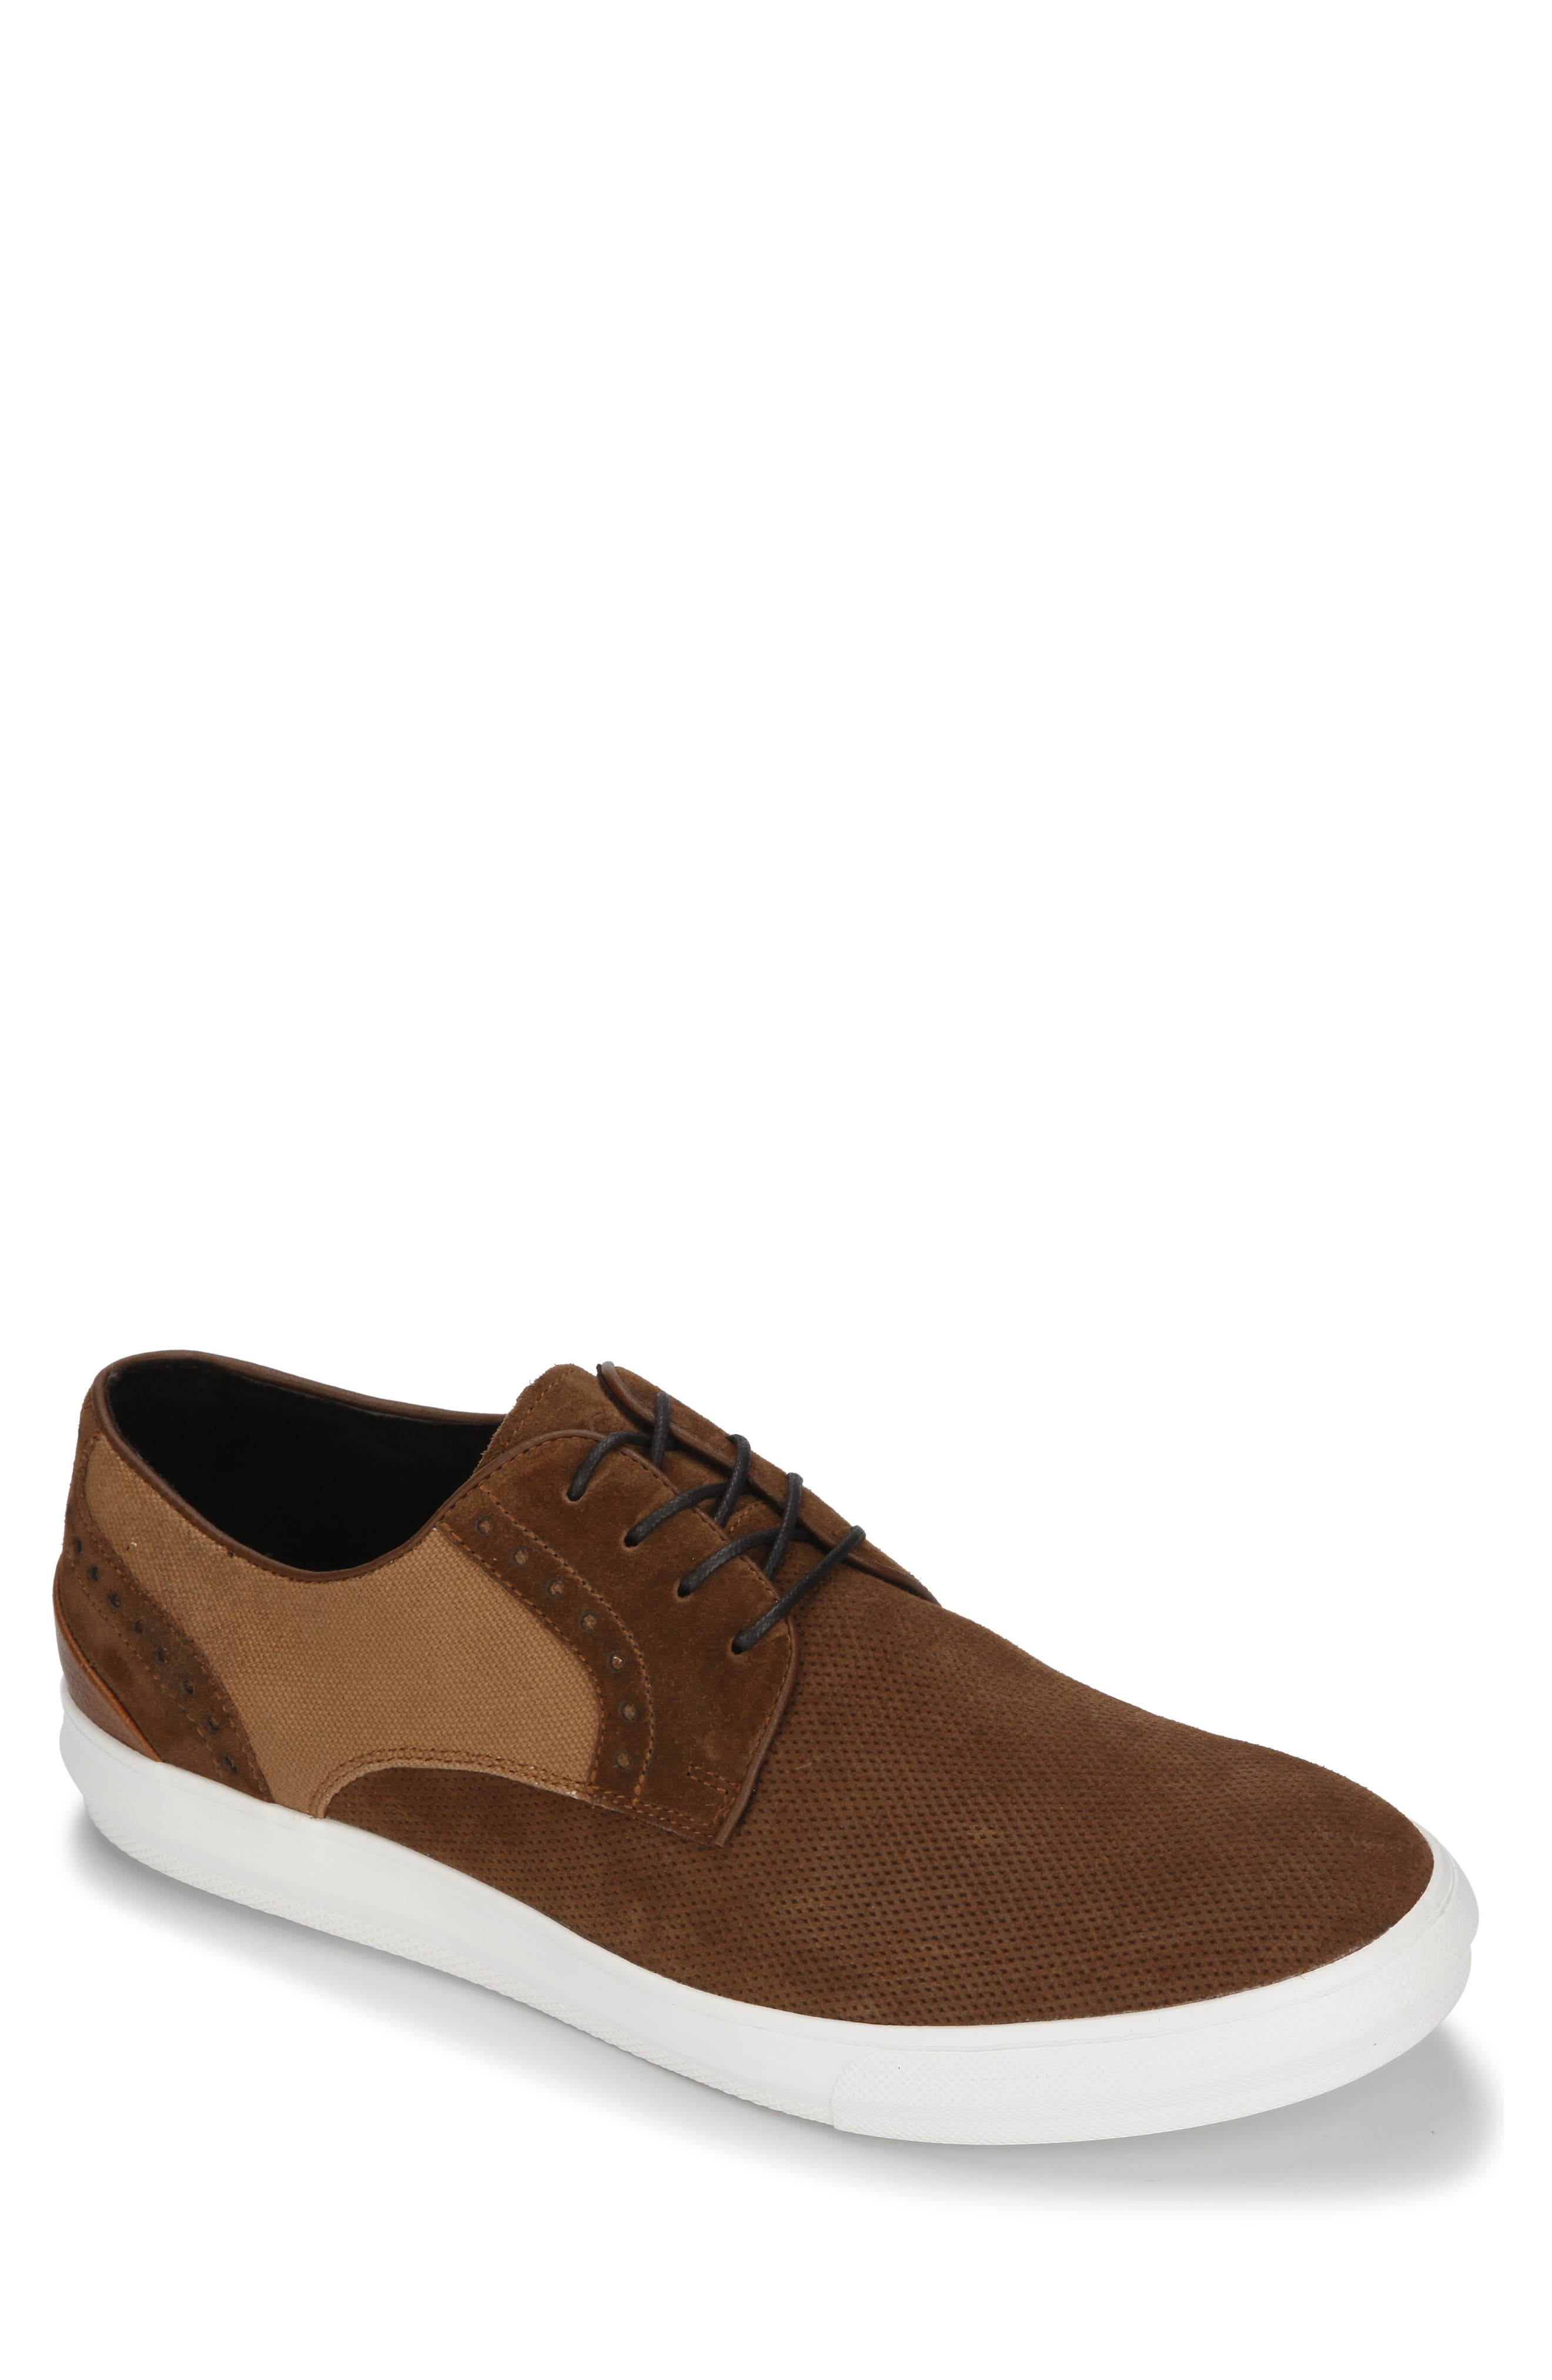 Reaction Kenneth Cole Reemer Sneaker, Brown